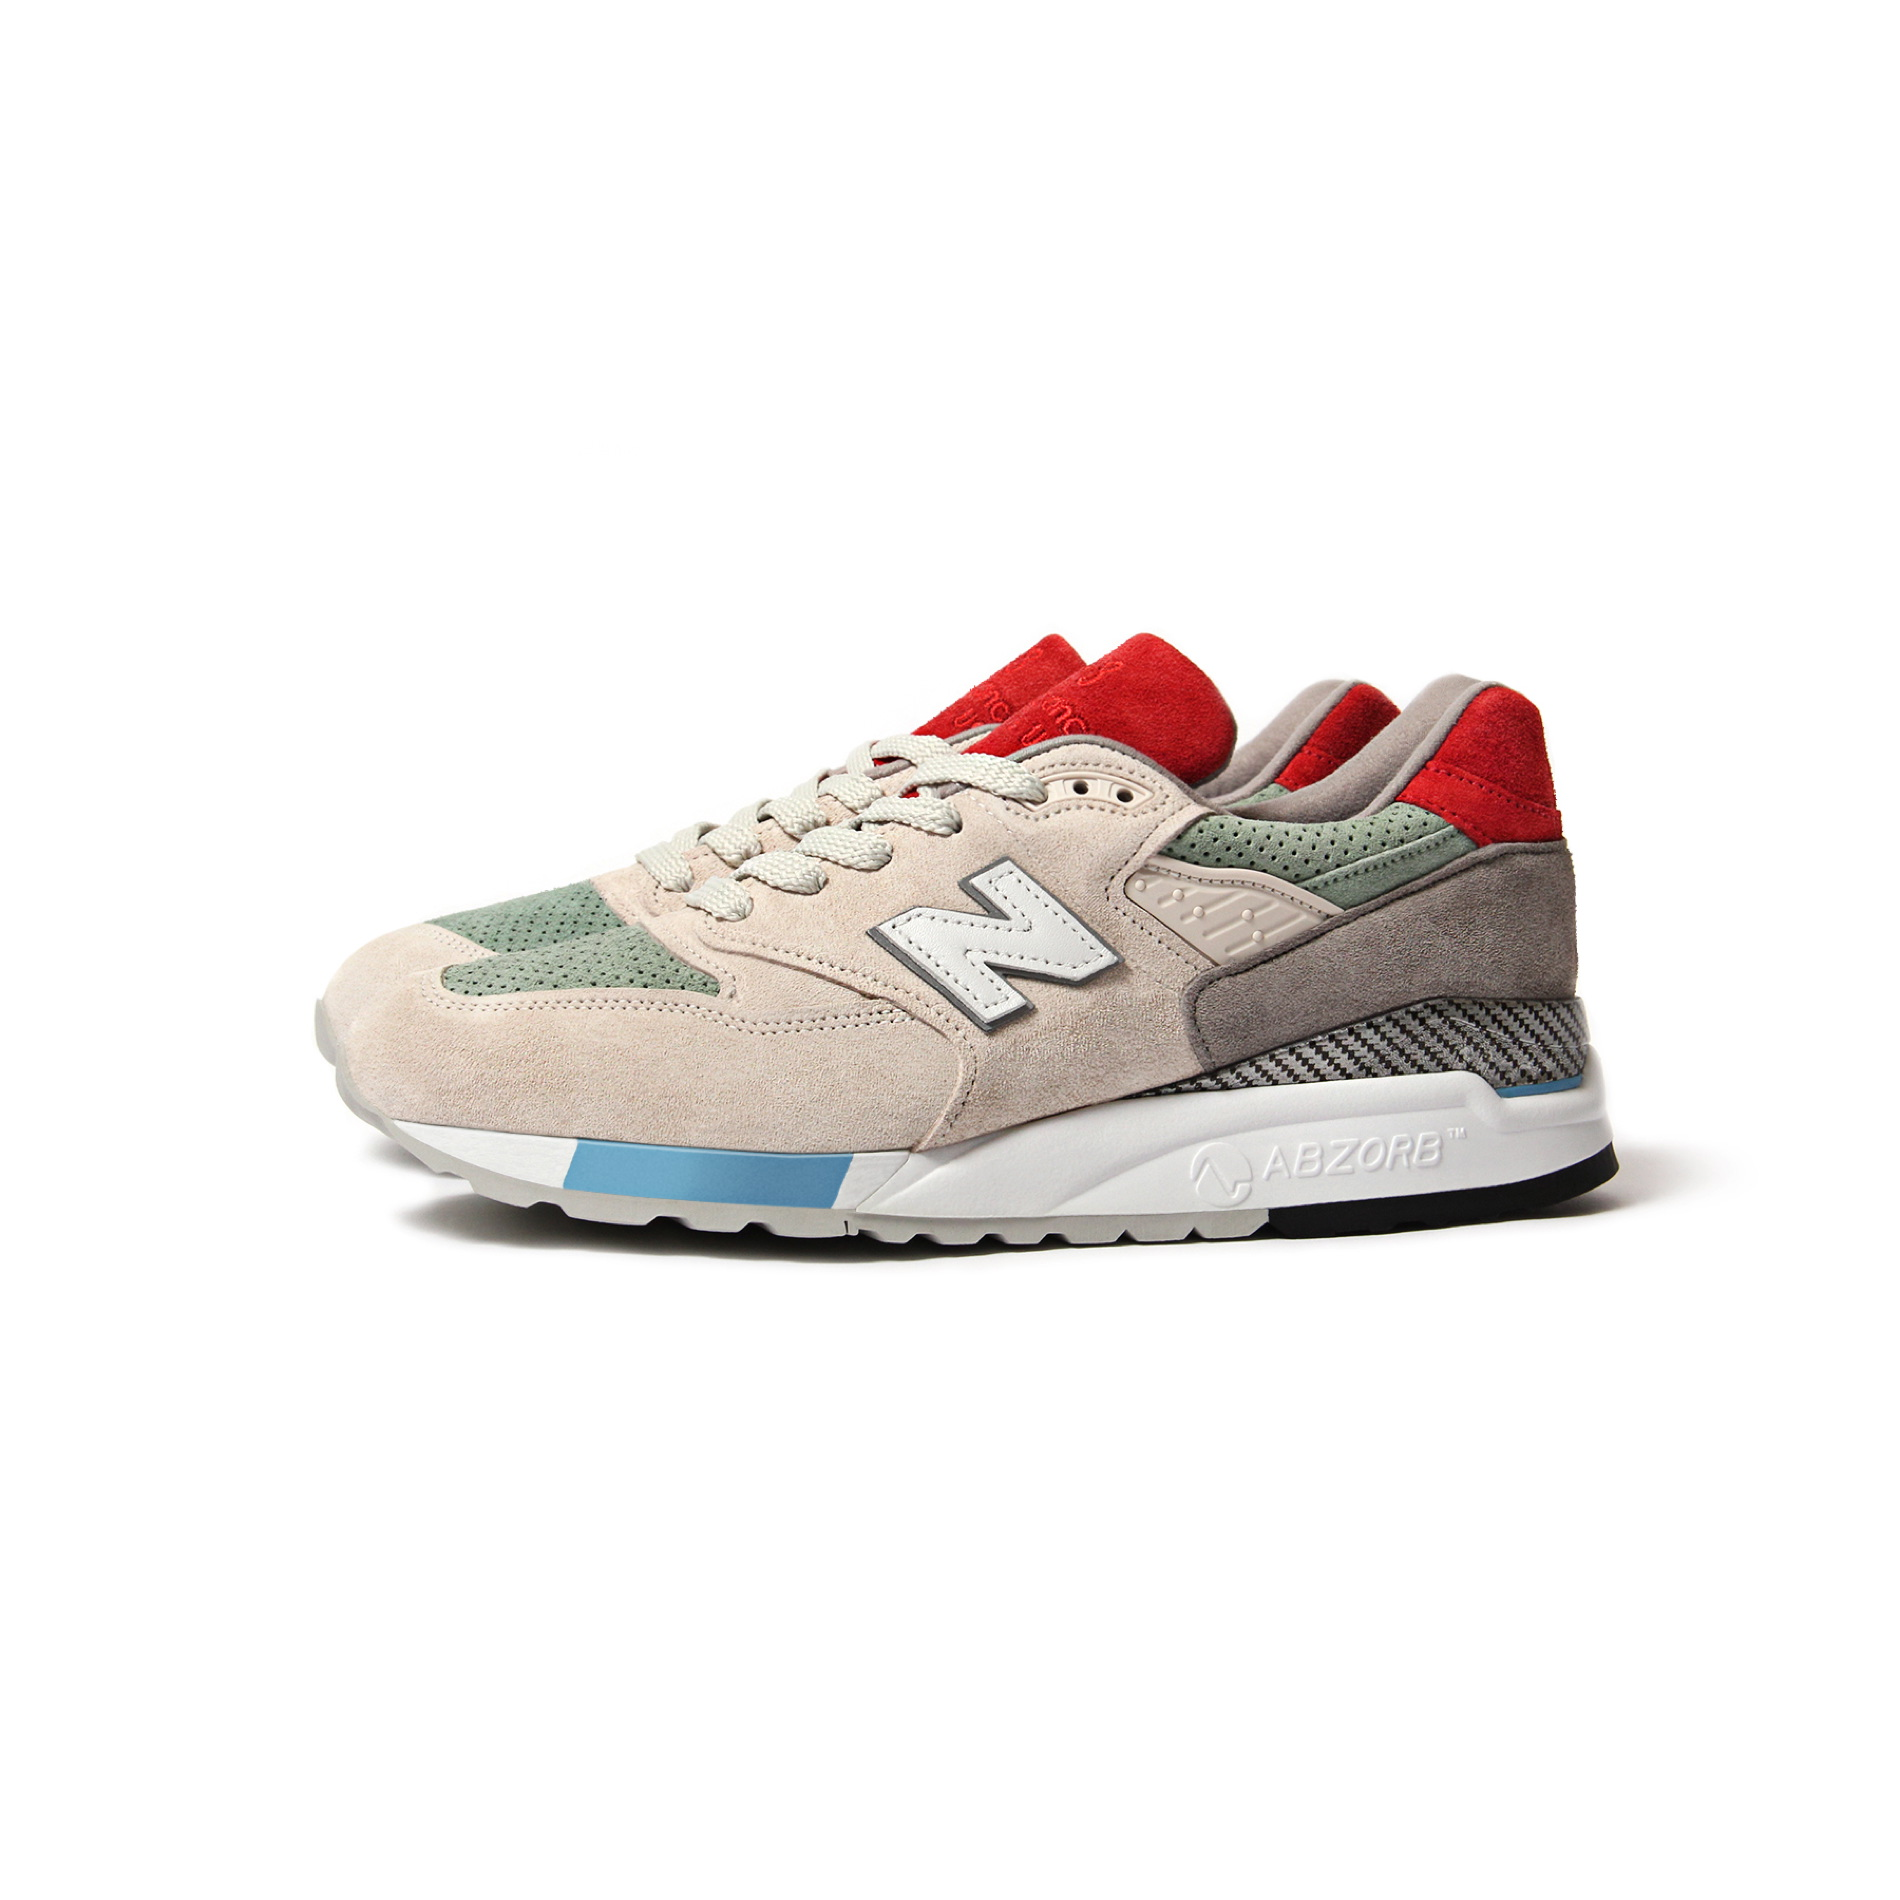 Cool shoes: Concepts x New Balance